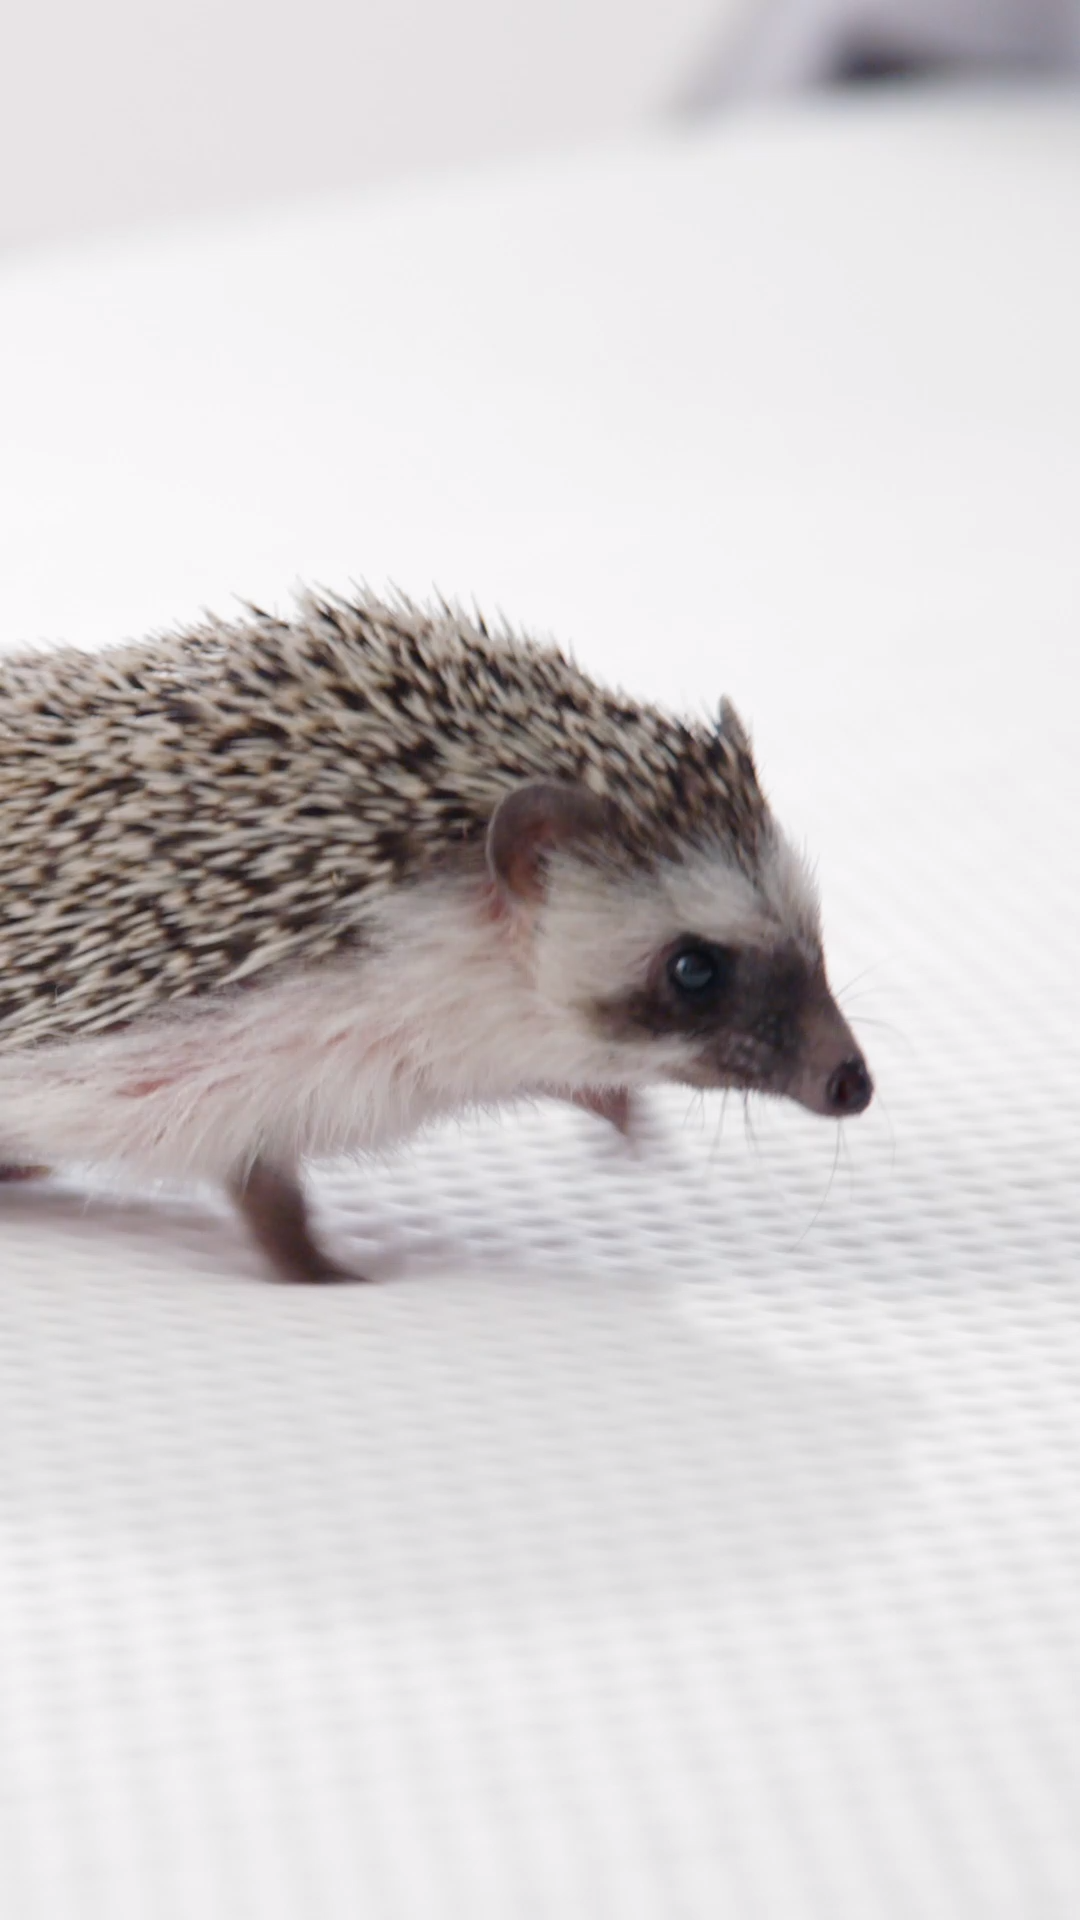 This hedgehog rated the Casper mattress 10/10*  *Based on